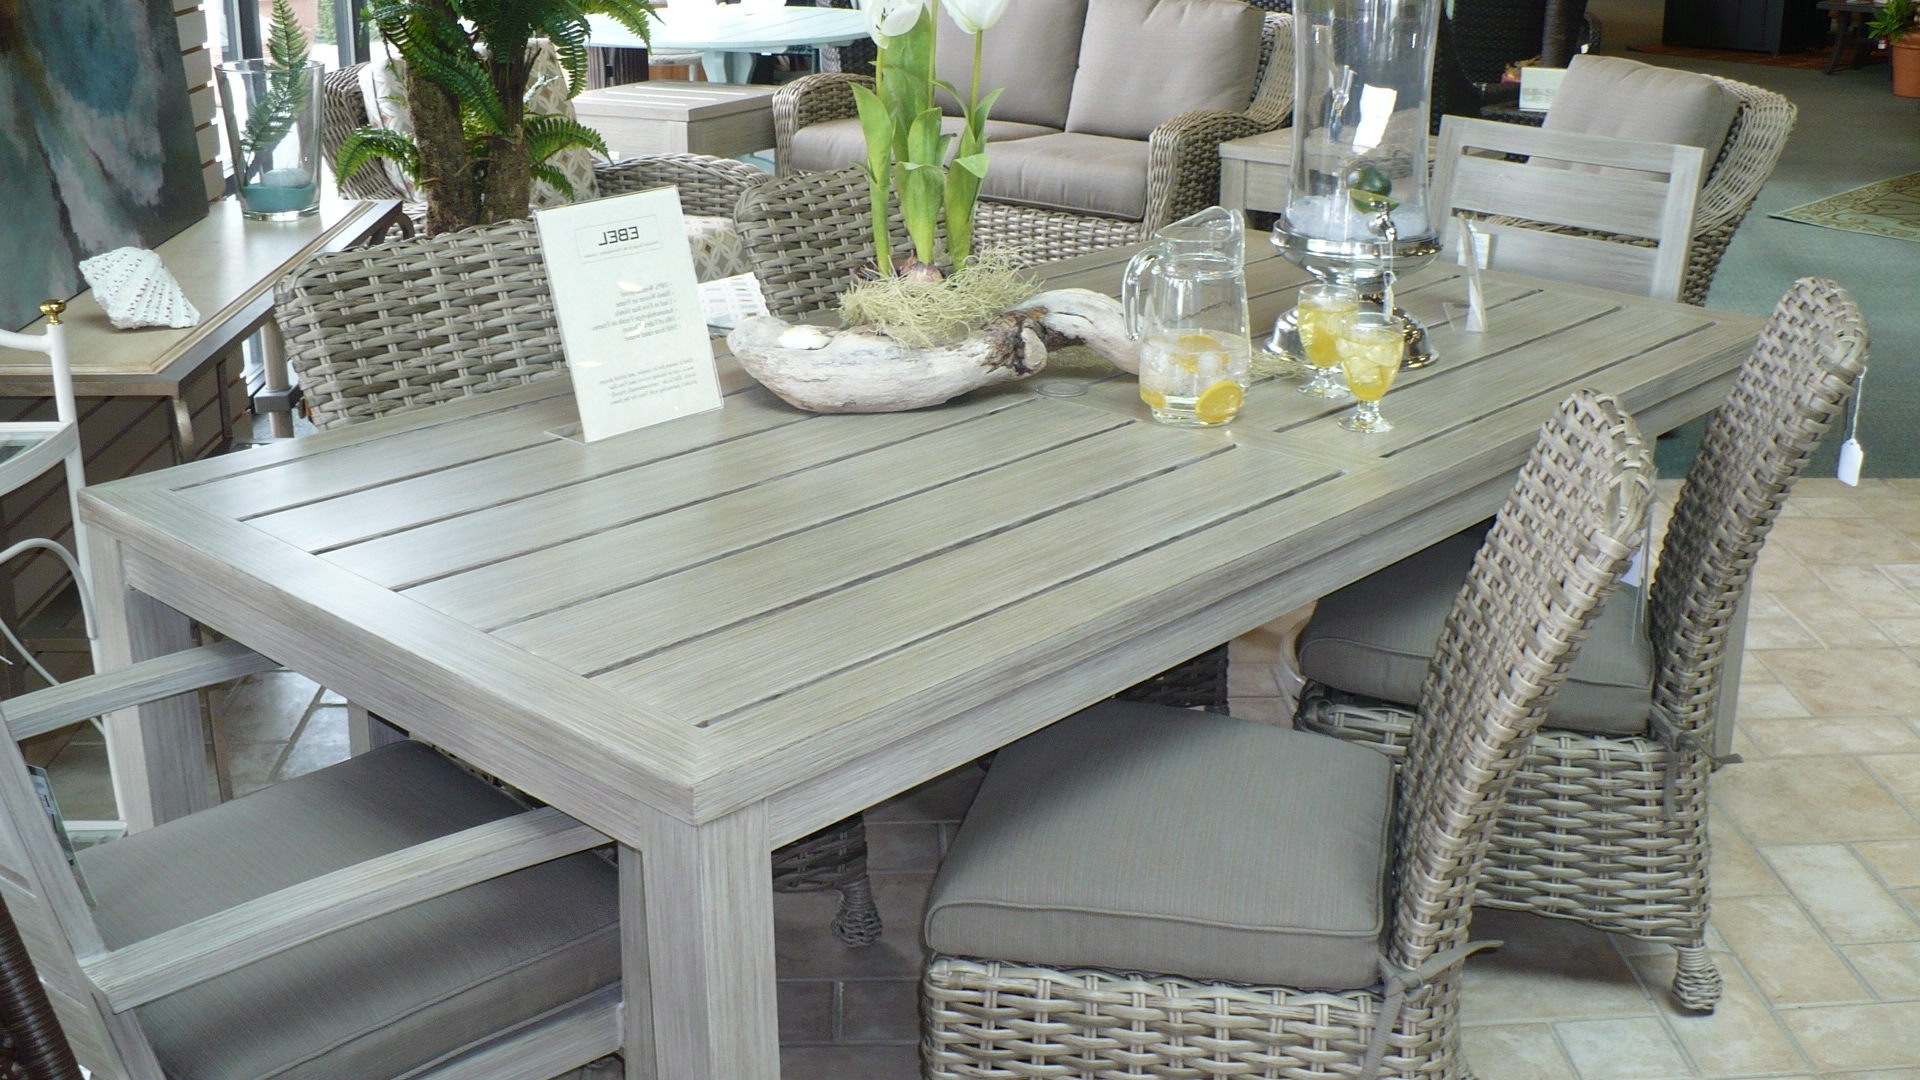 Gray Patio Conversation Sets Regarding Trendy Urgent Gray Wicker Outdoor Furniture New Patio Scheme Hello (Gallery 6 of 15)